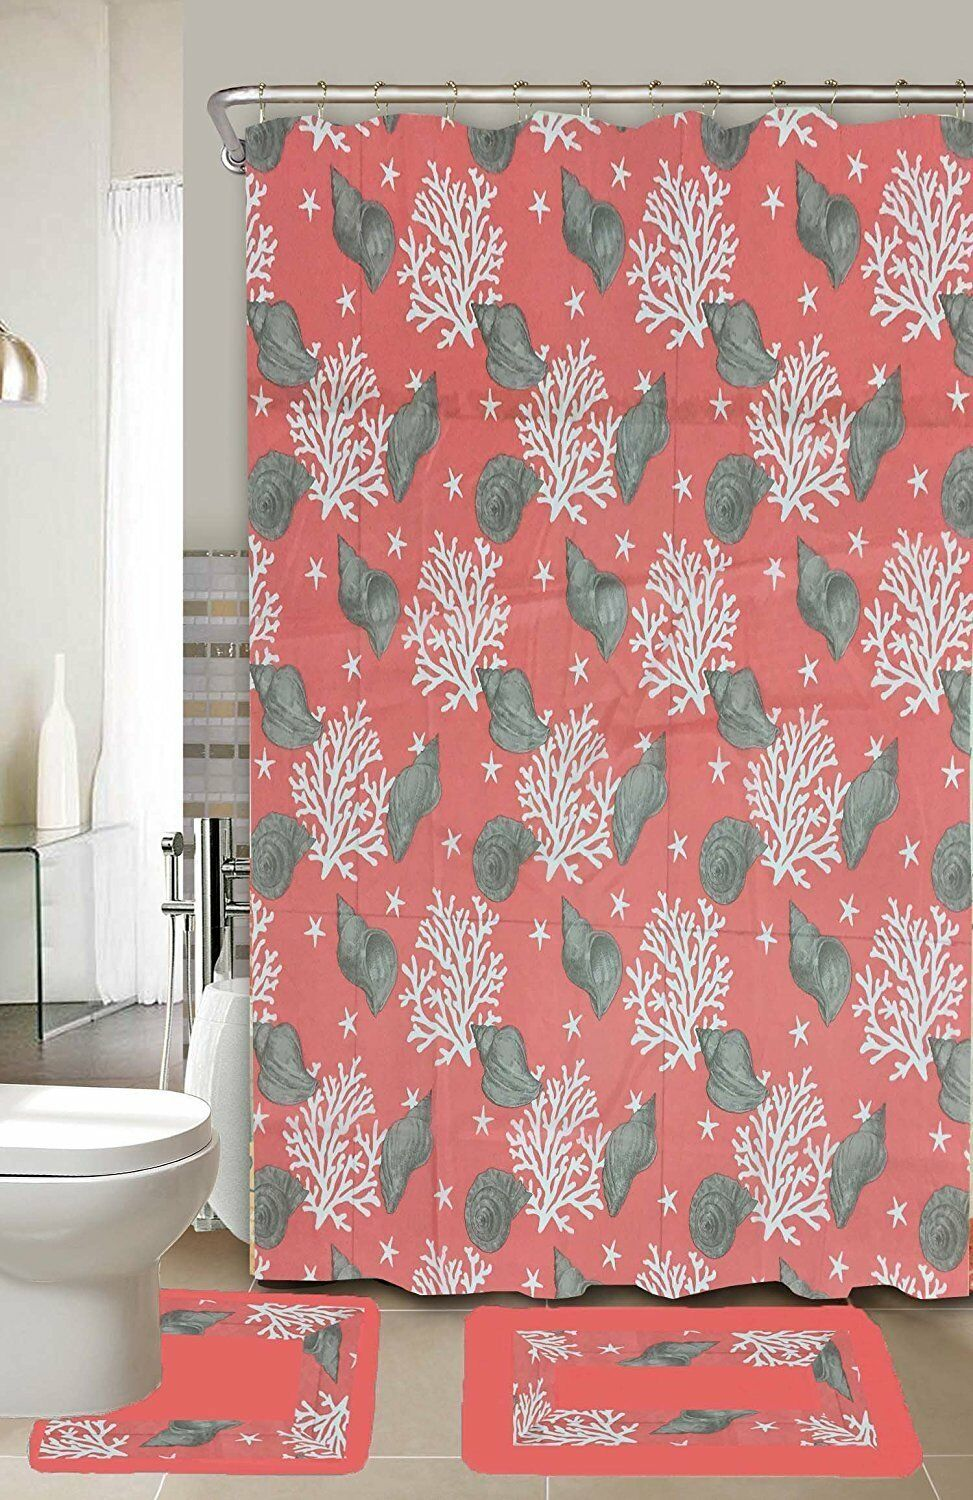 Coral Shell 15-Piece Bathroom Accessory Set Bath Mats Shower Curtain - Coral Pink